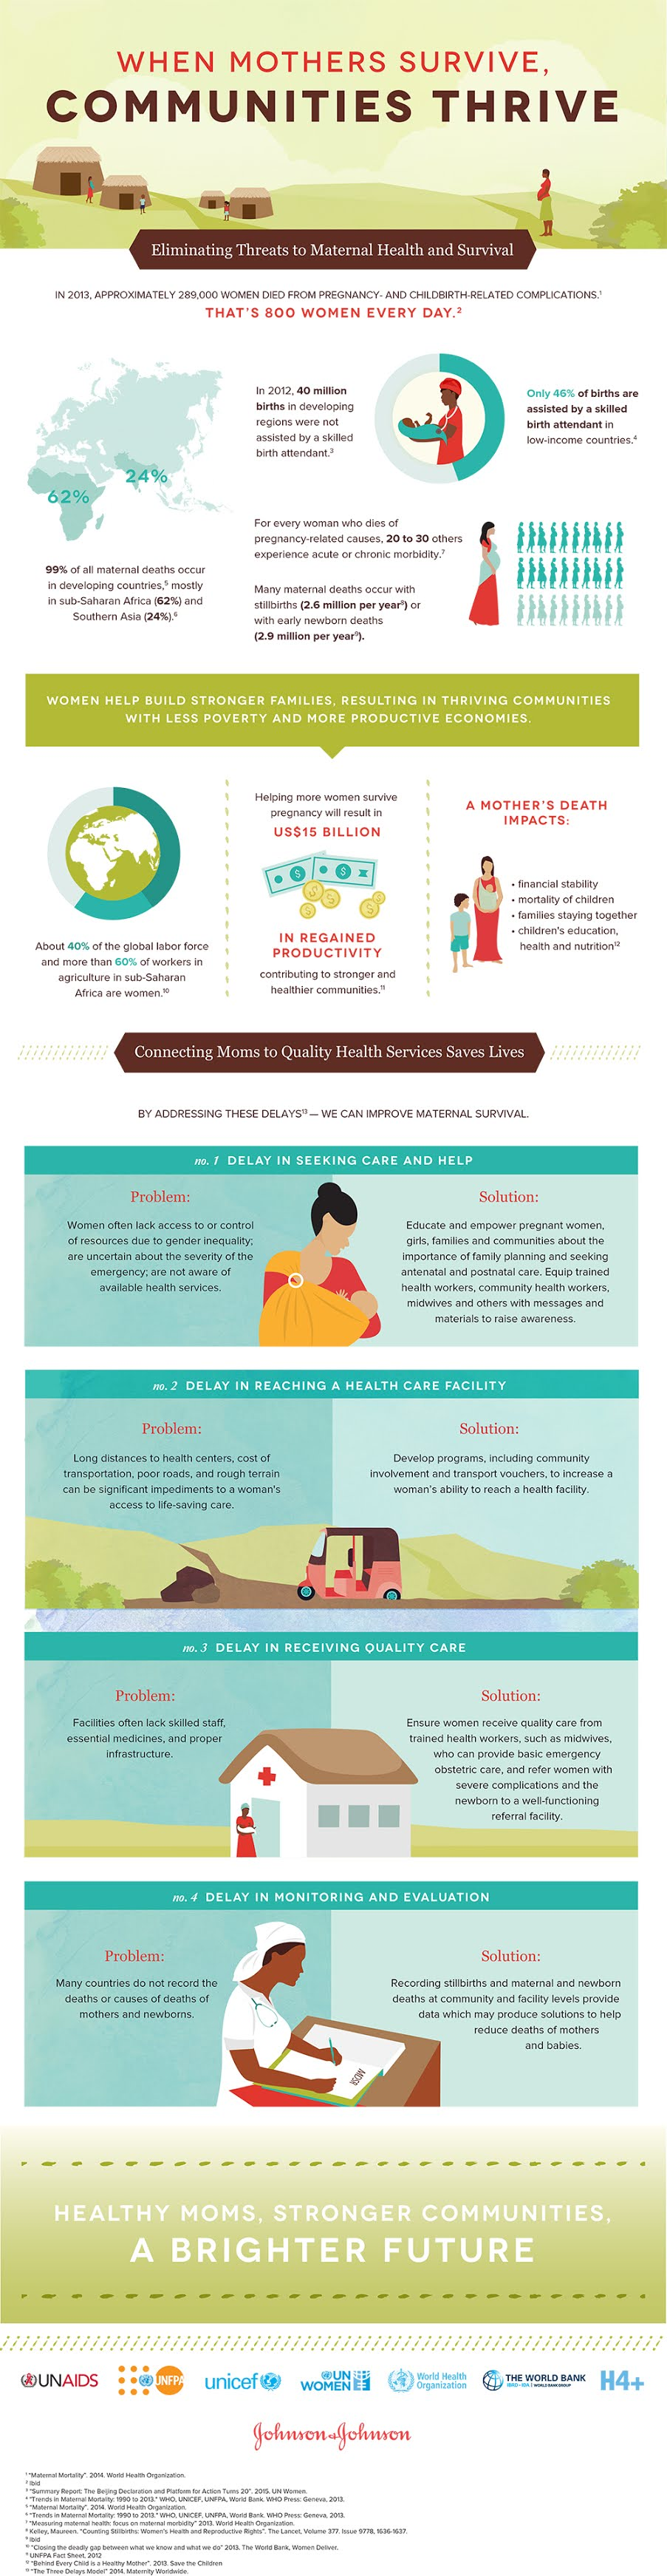 When Mothers Survive, Communities Thrive #infographic #Health #infographics #Communities Thrive #Infographic